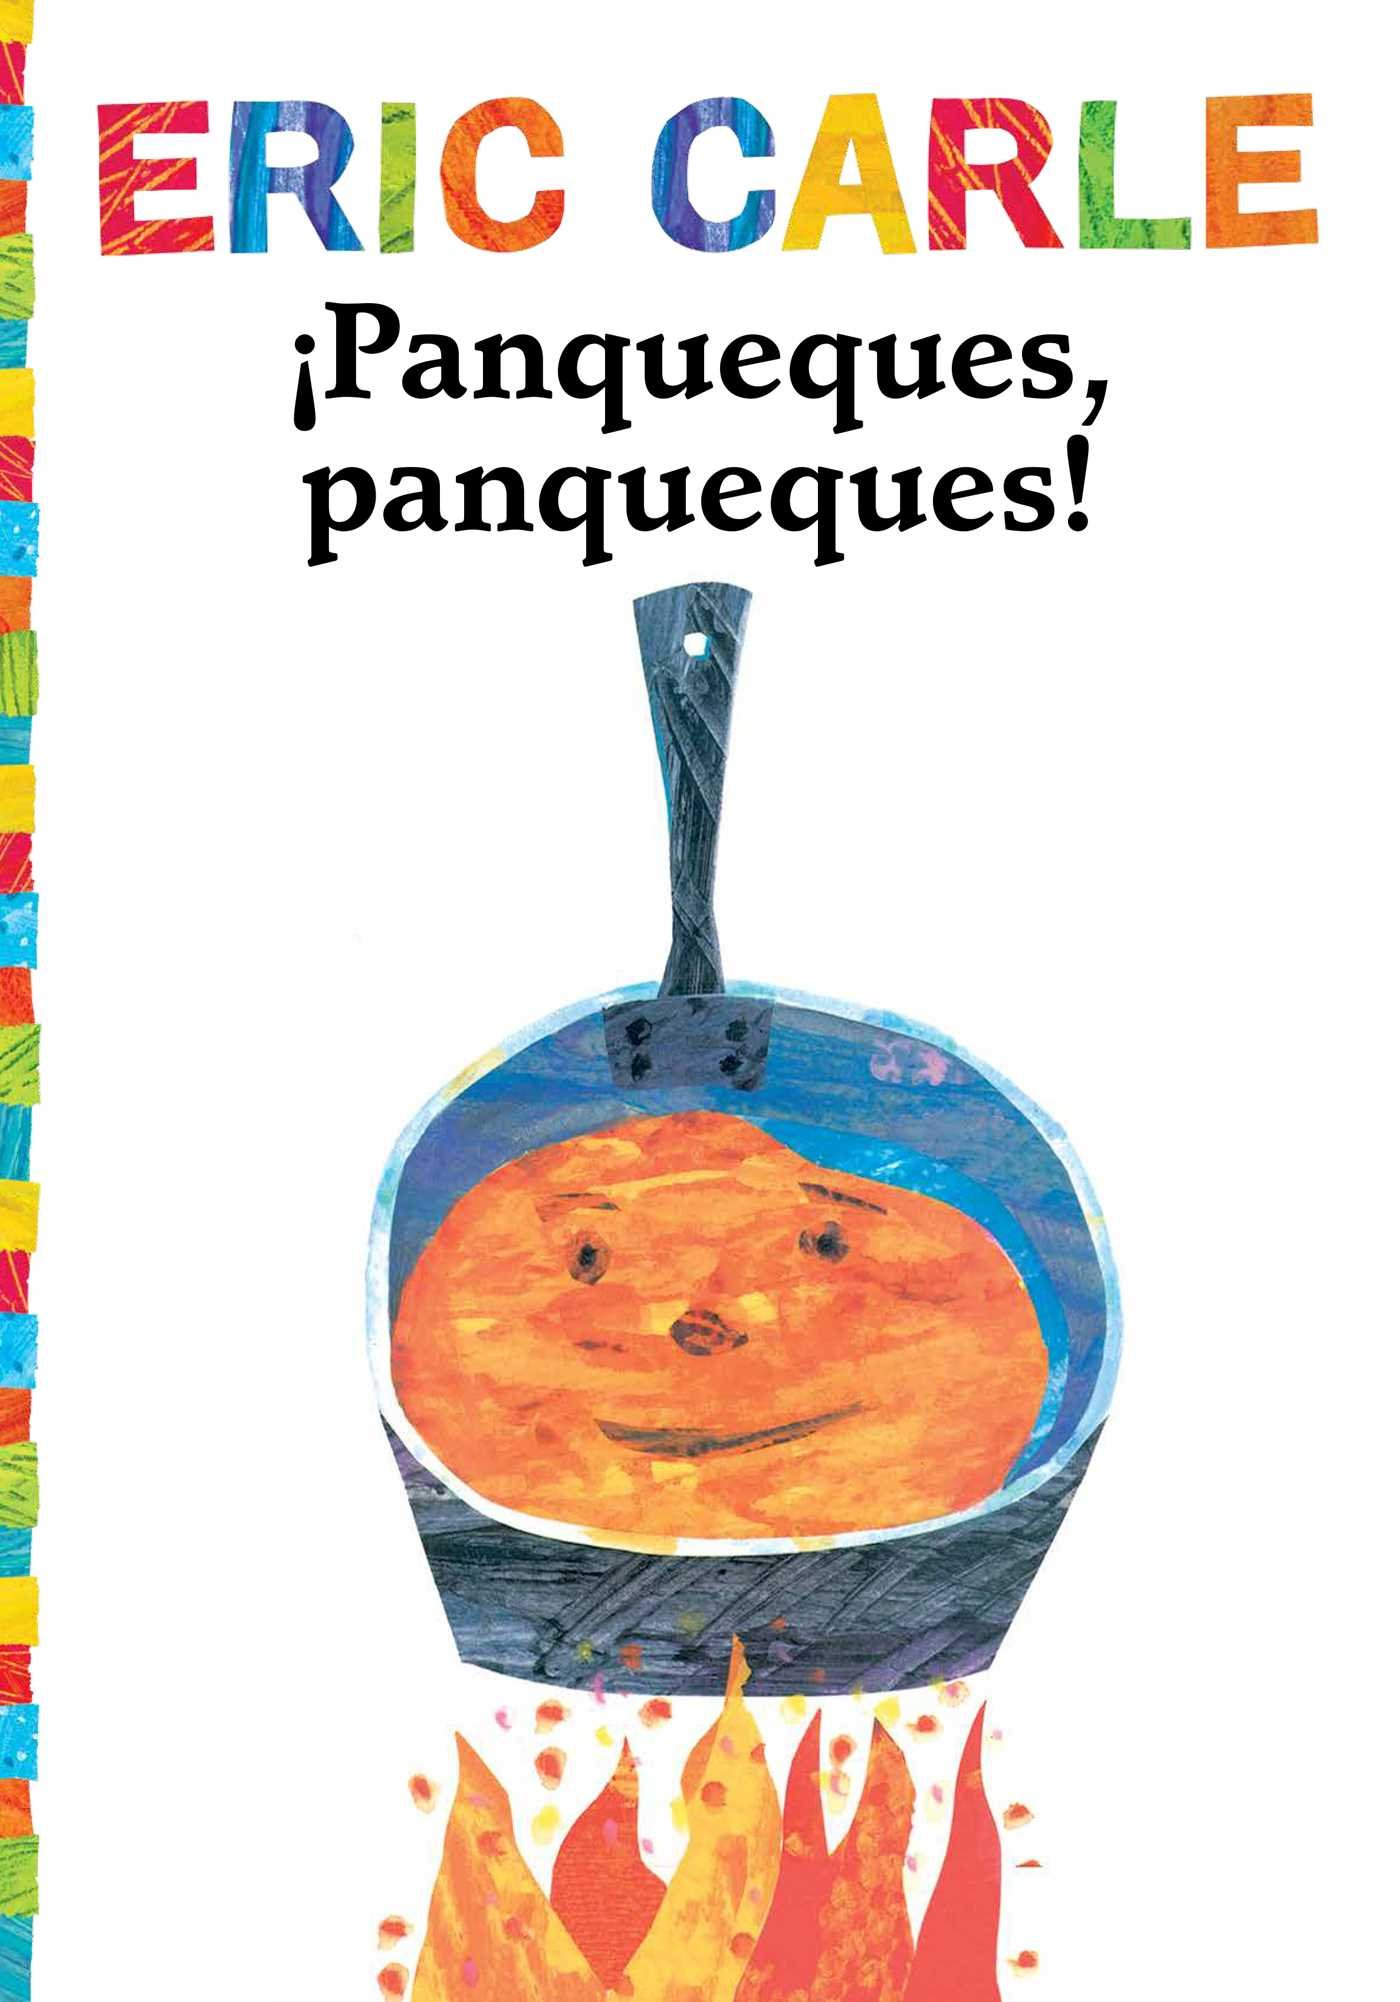 ¡Panqueques, panqueques! (Pancakes, Pancakes!) (The World of Eric Carle) (Spanish Edition) (Spanish) Paperback – October 10, 2017